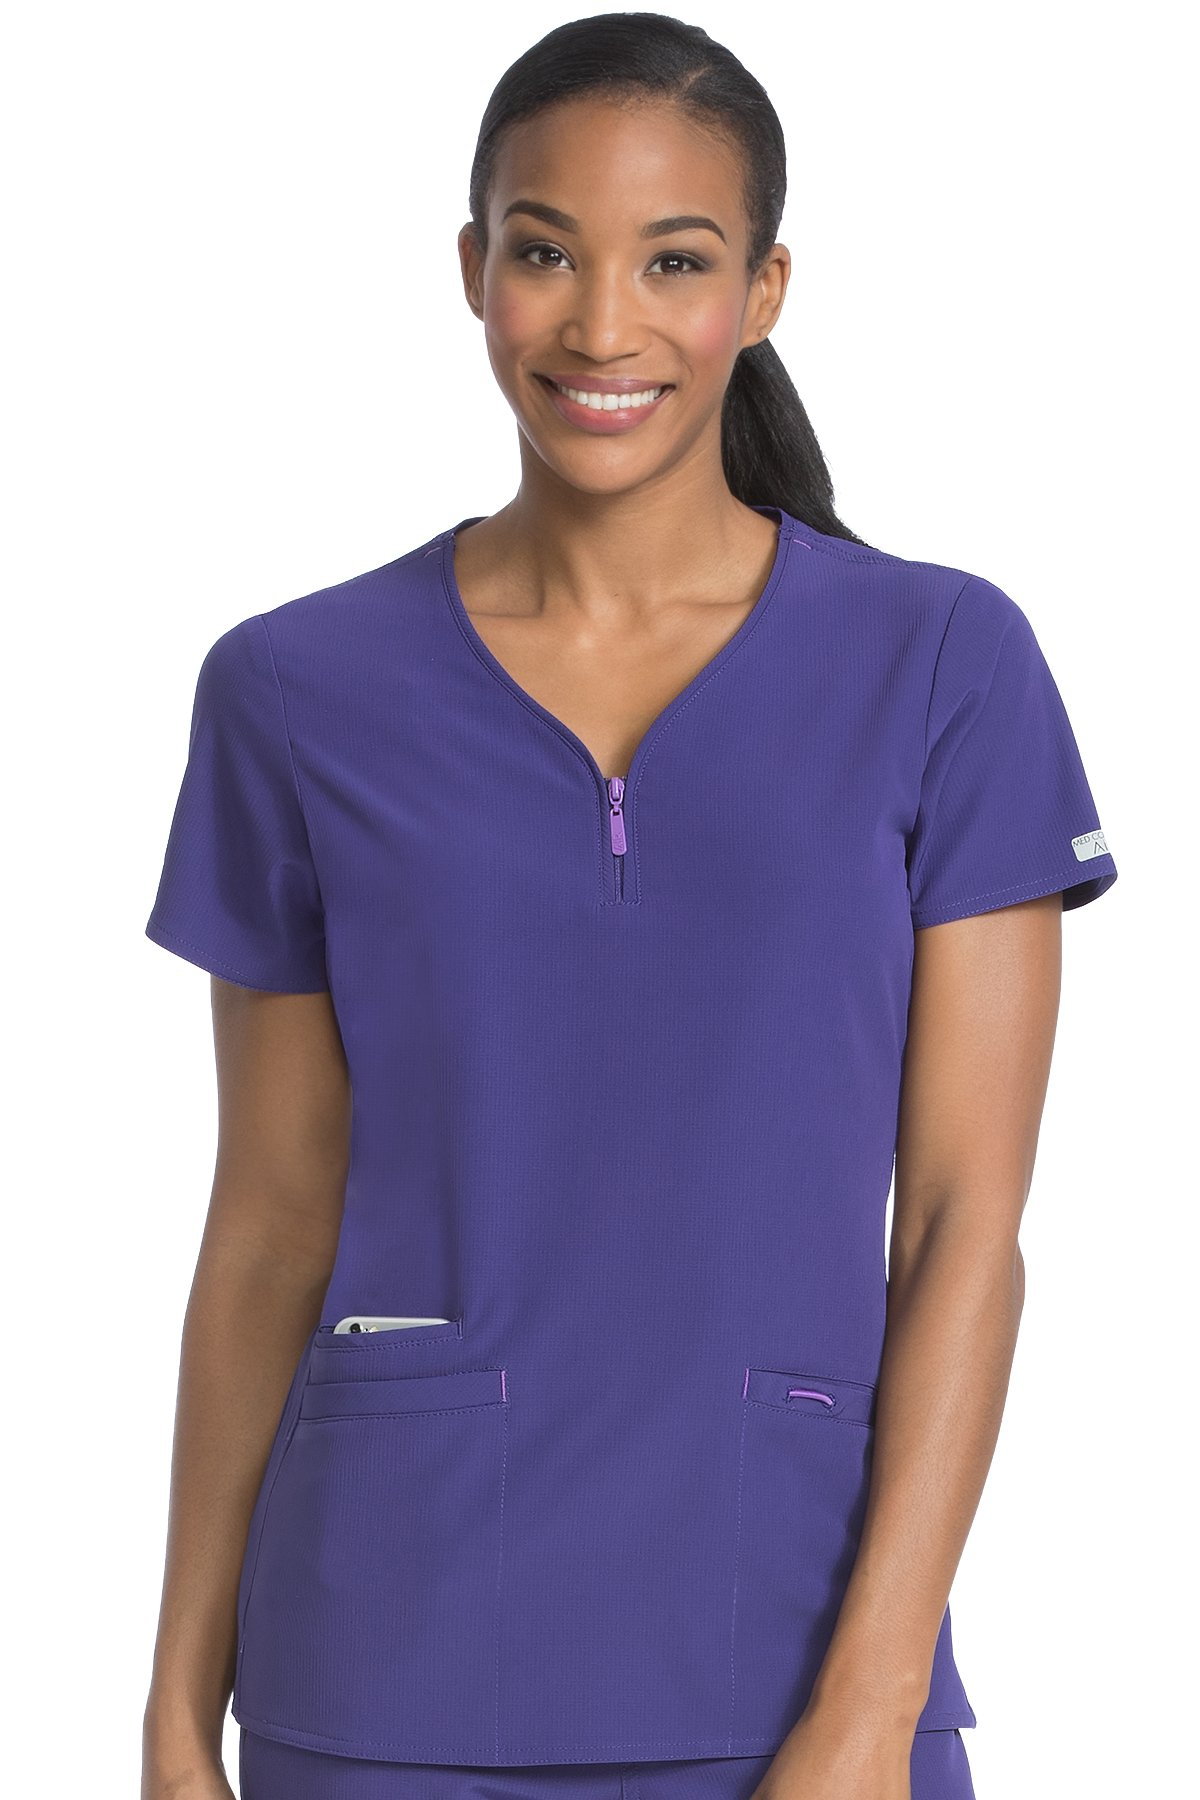 Med Couture Women's 'Air Collection' Front Zip Zippity Scrub Top